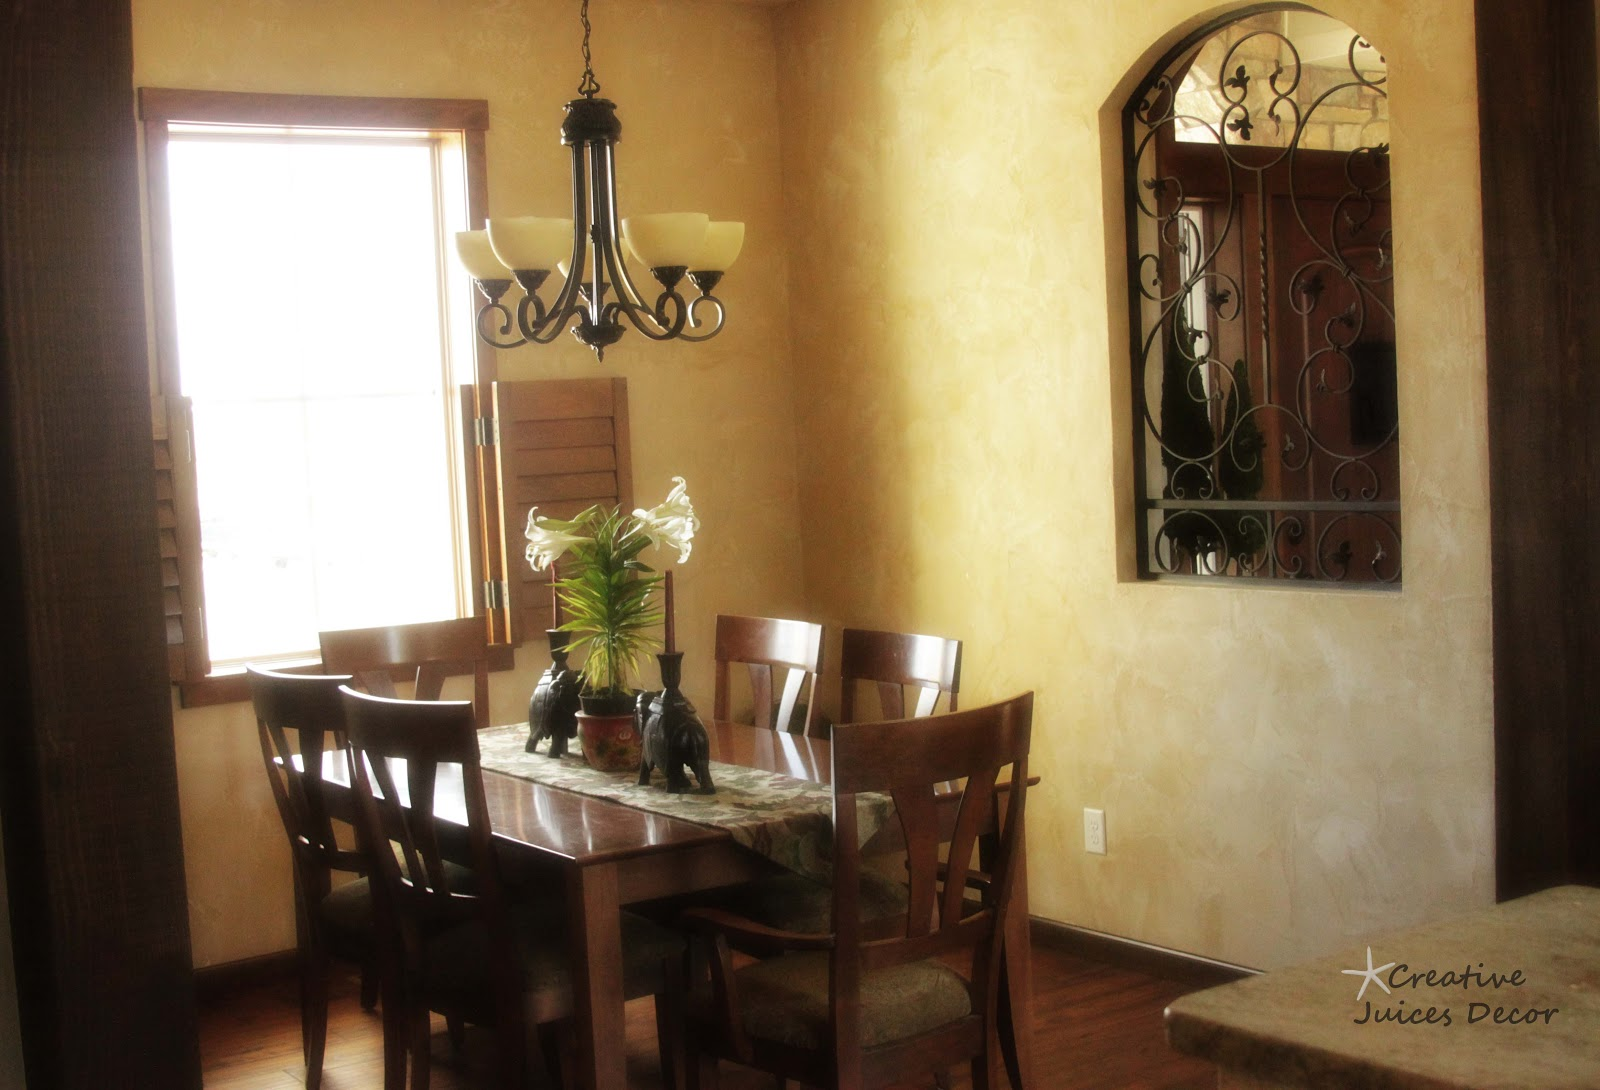 Creative juices decor all about foyers and entries focal for Tuscan dining room wall art